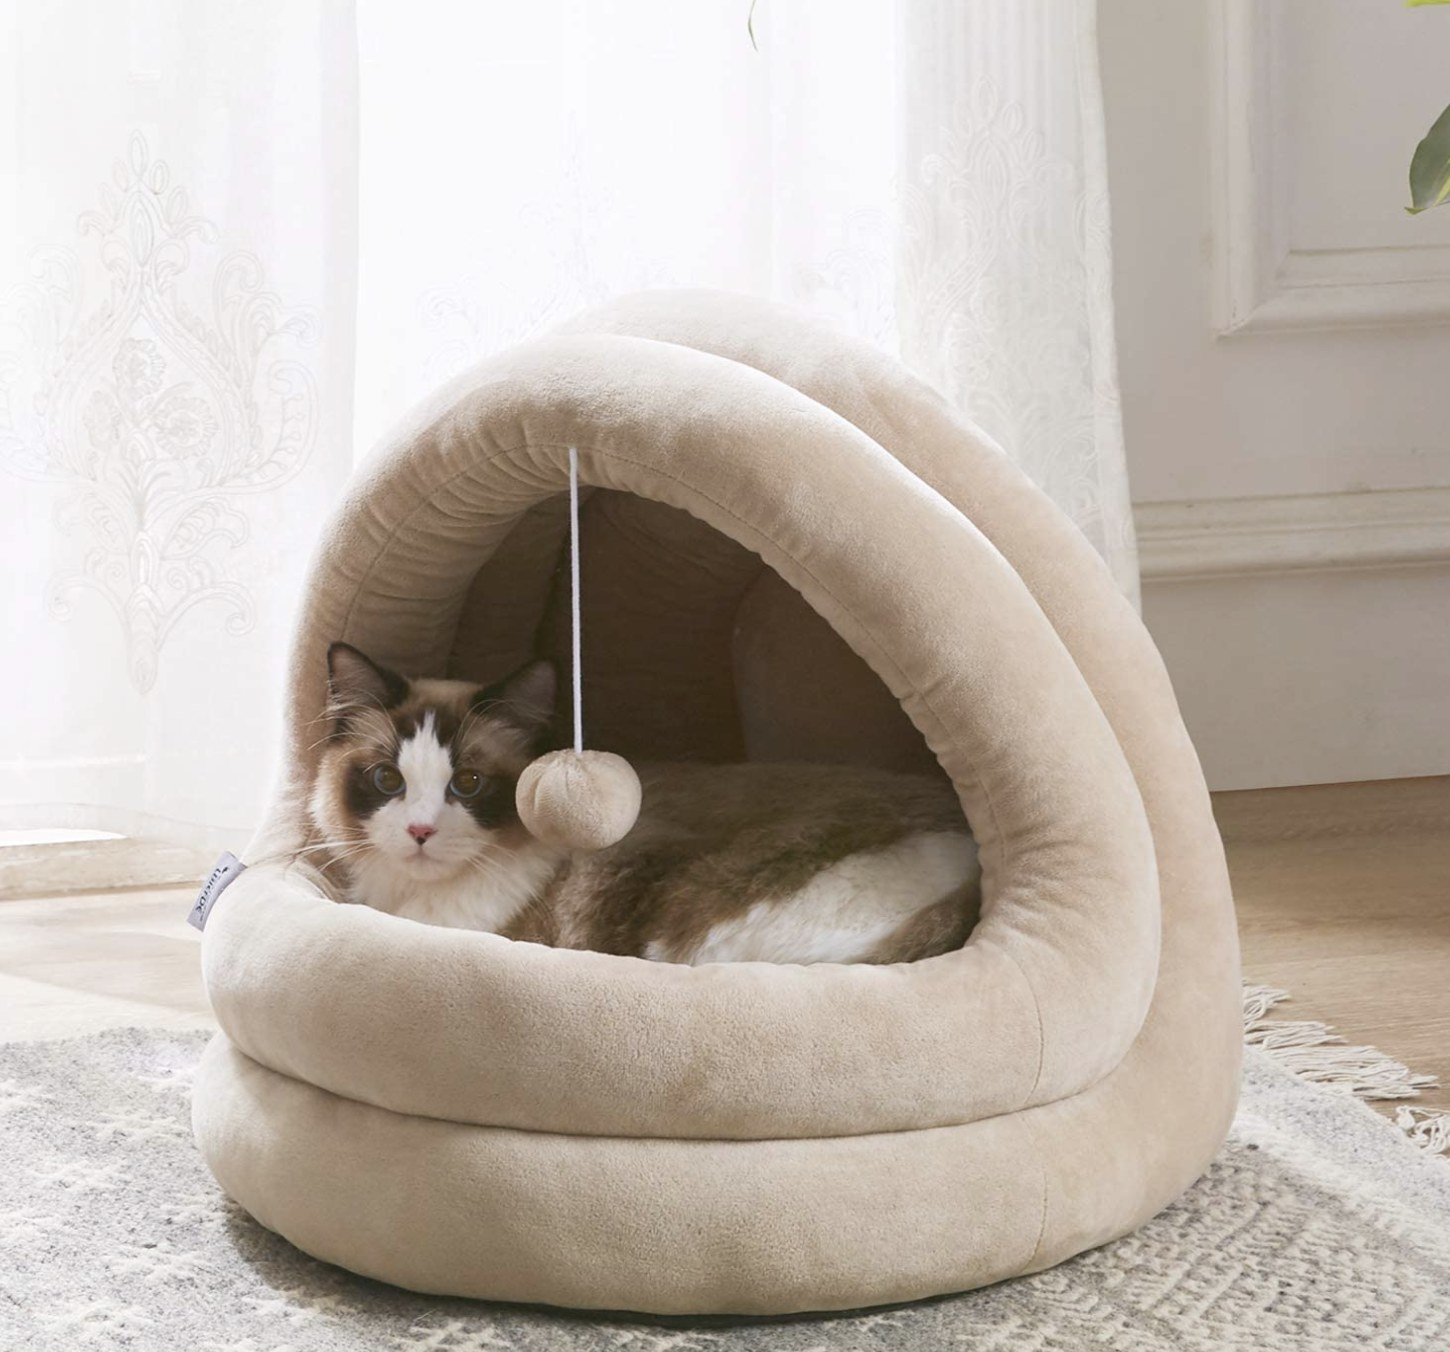 a brown and white cat sitting inside a tan cave bed with a single pom-pom hanging at its opening